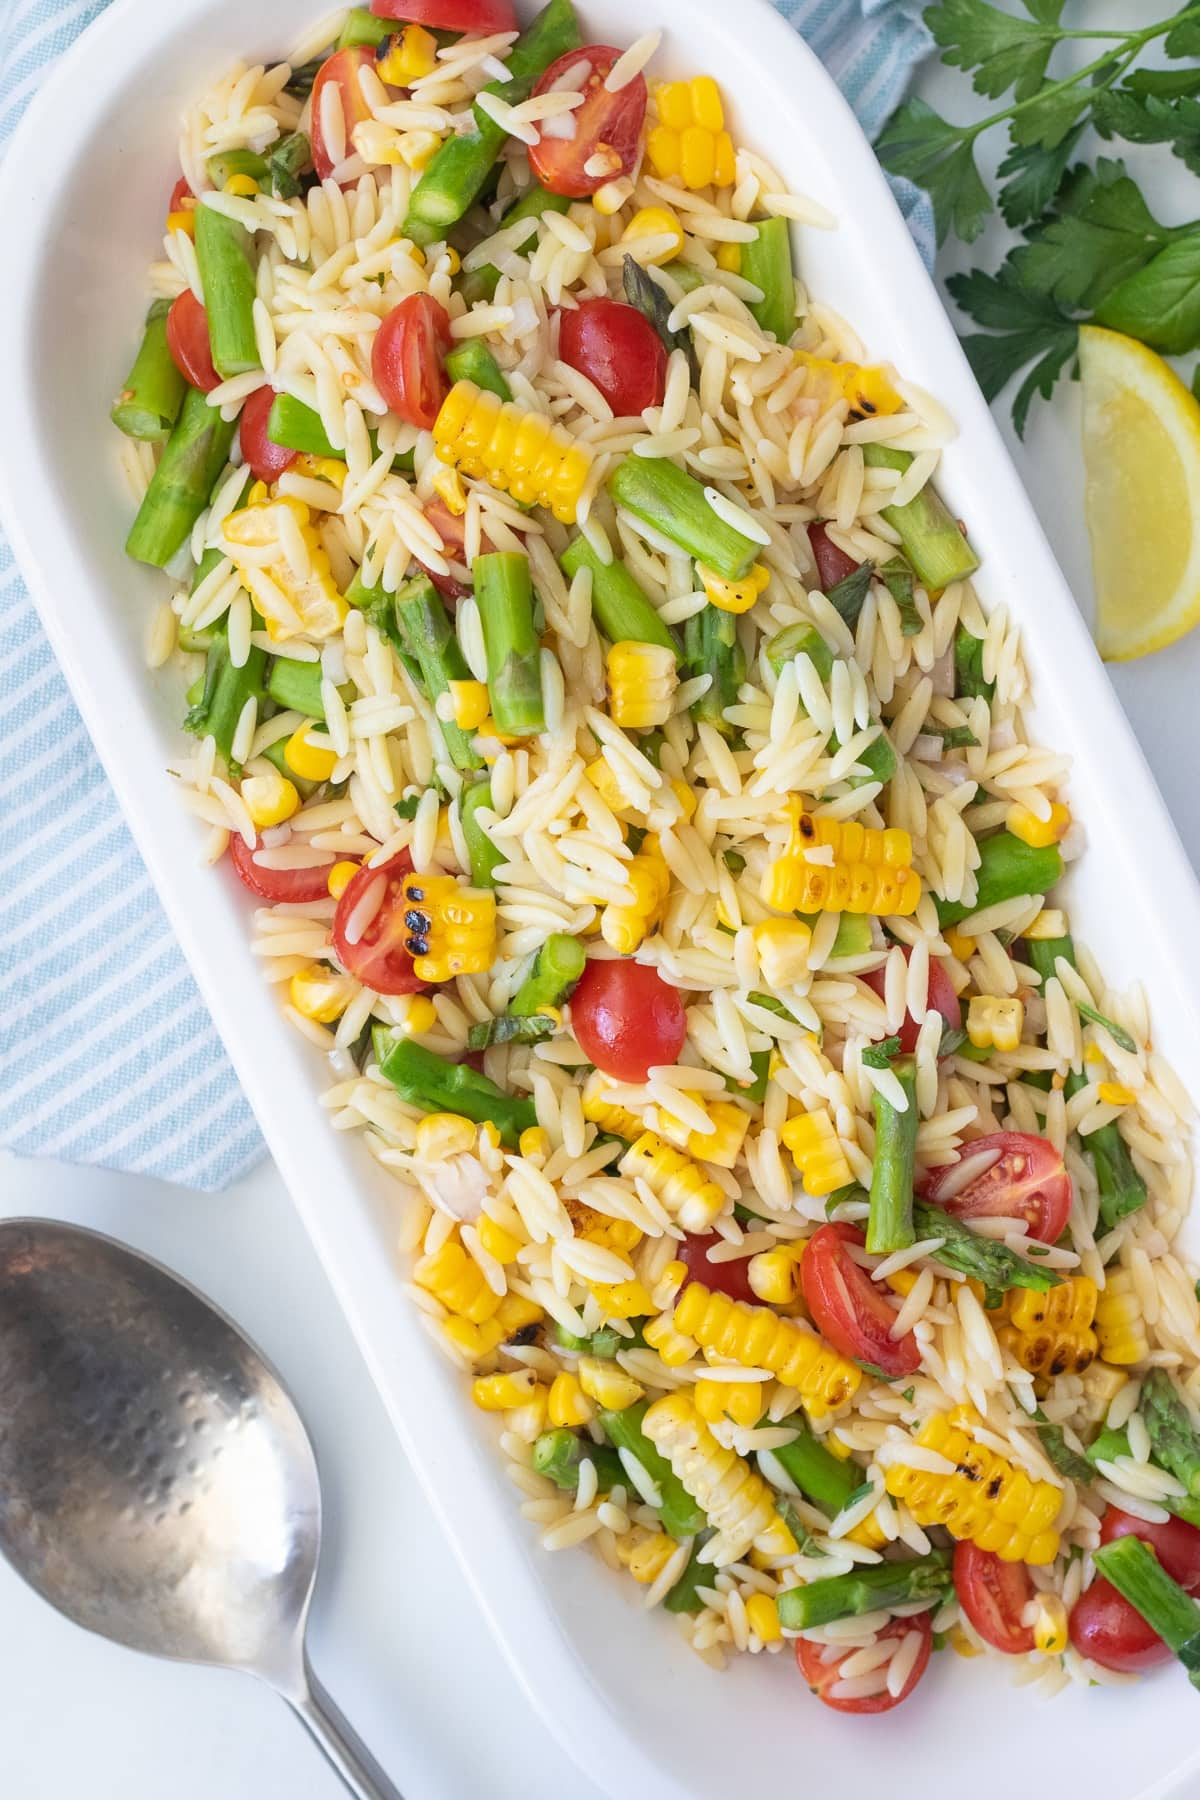 Summer orzo salad made with a quick lemon herb vinaigrette, cherry tomatoes, seared fresh corn, and asparagus.